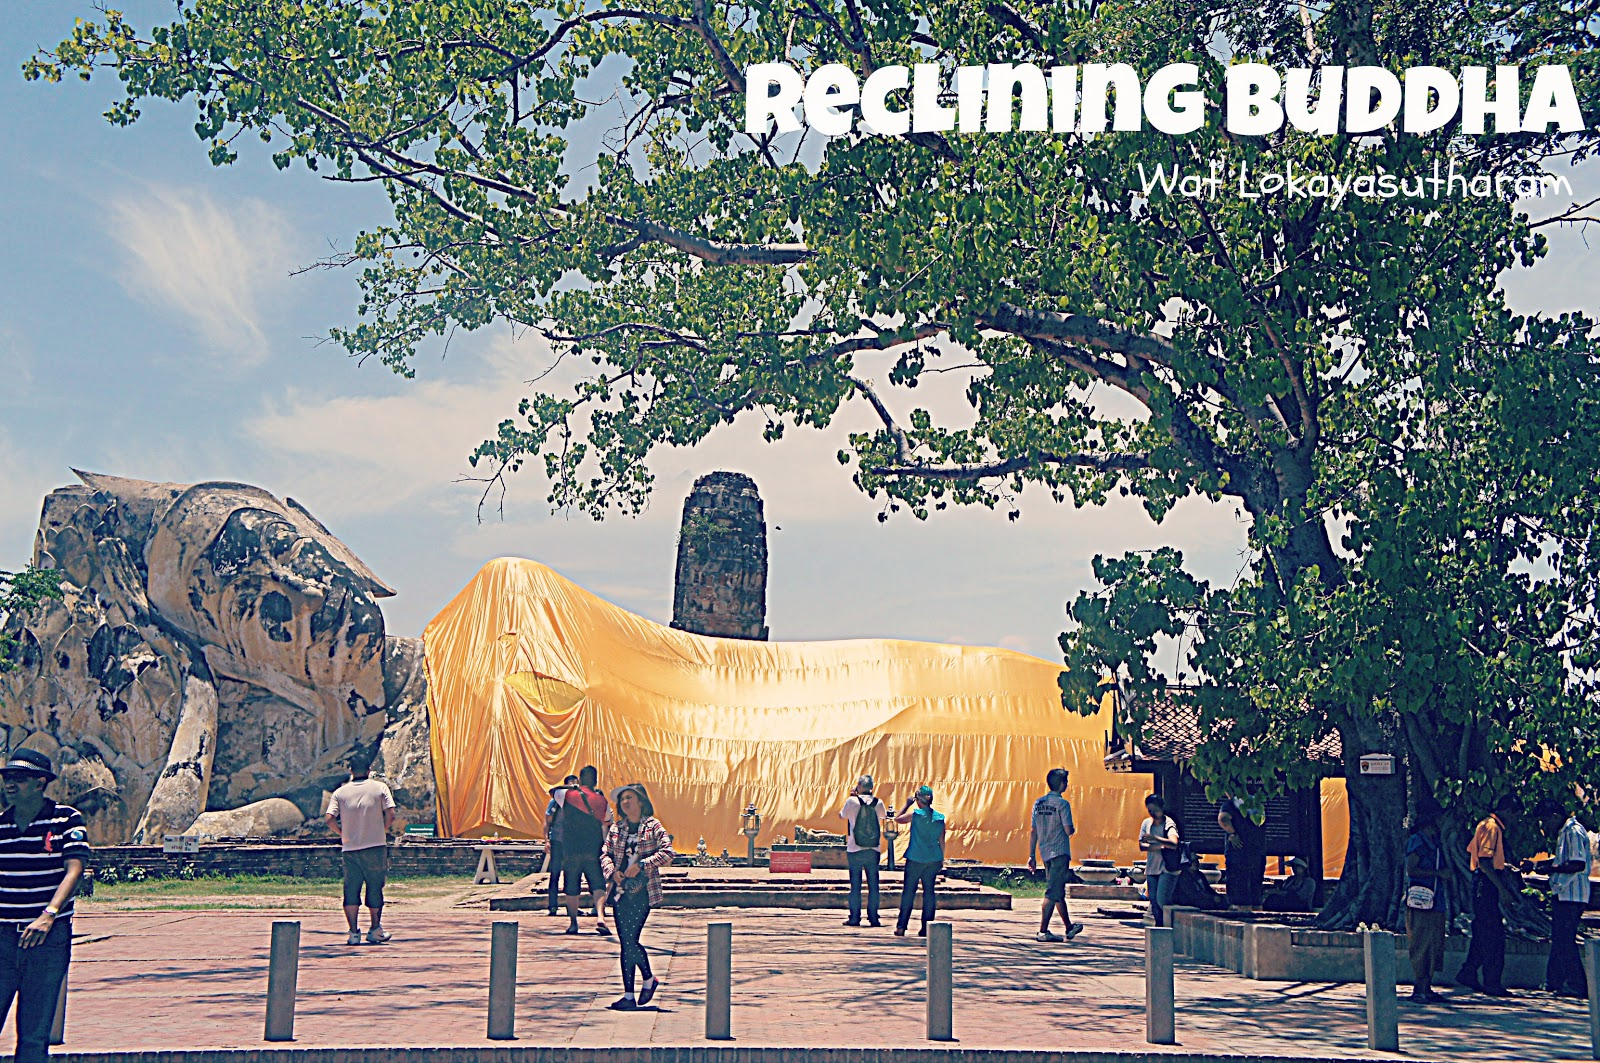 Reclining Buddha at Wat Lokayasutharam Thailand Travel Guide